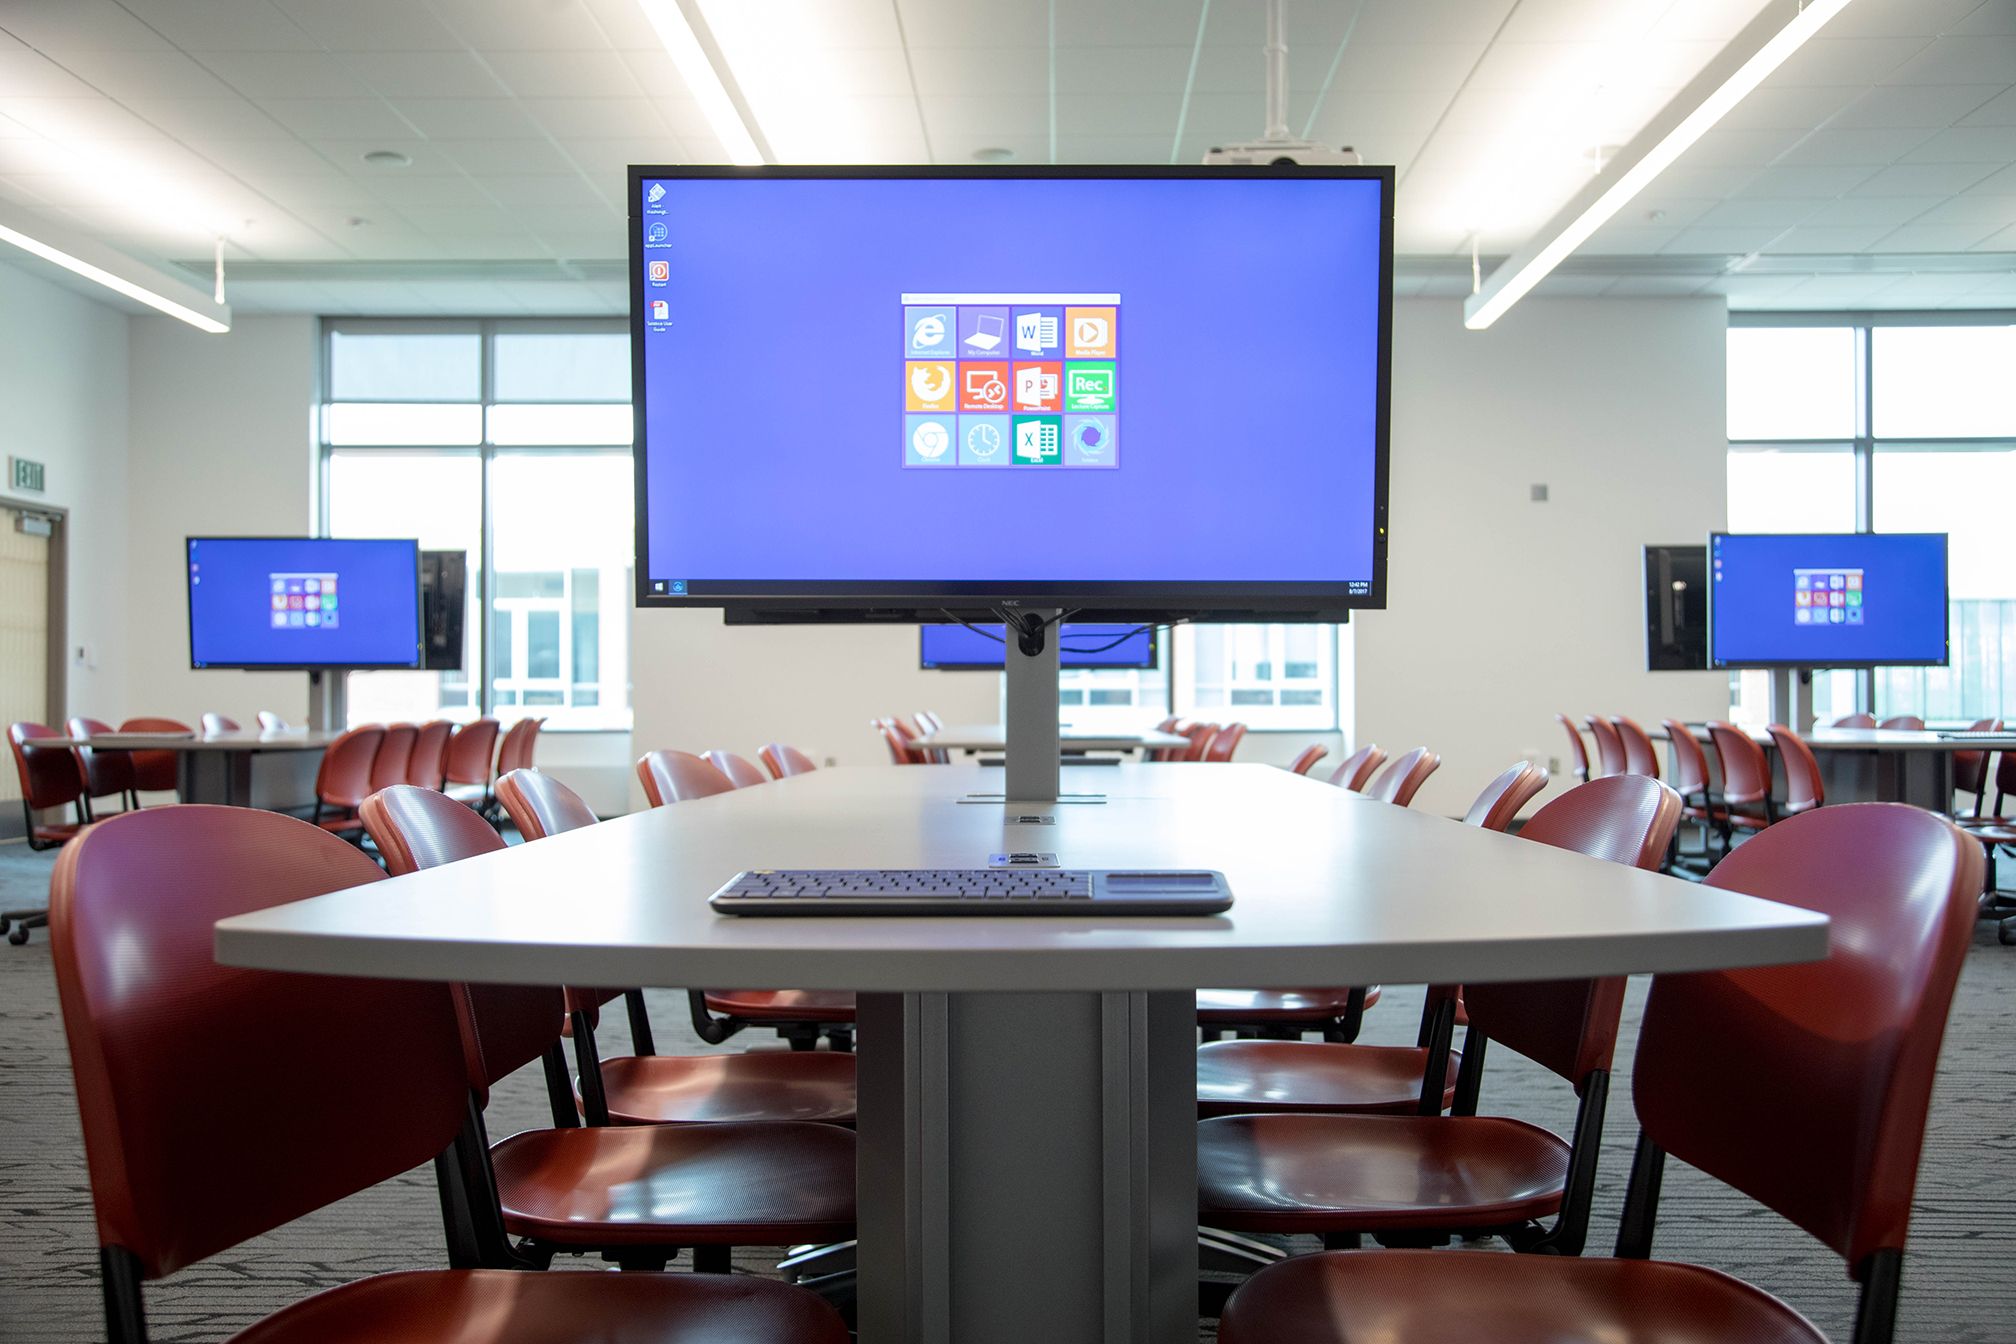 DCB 235 Tables with large monitors